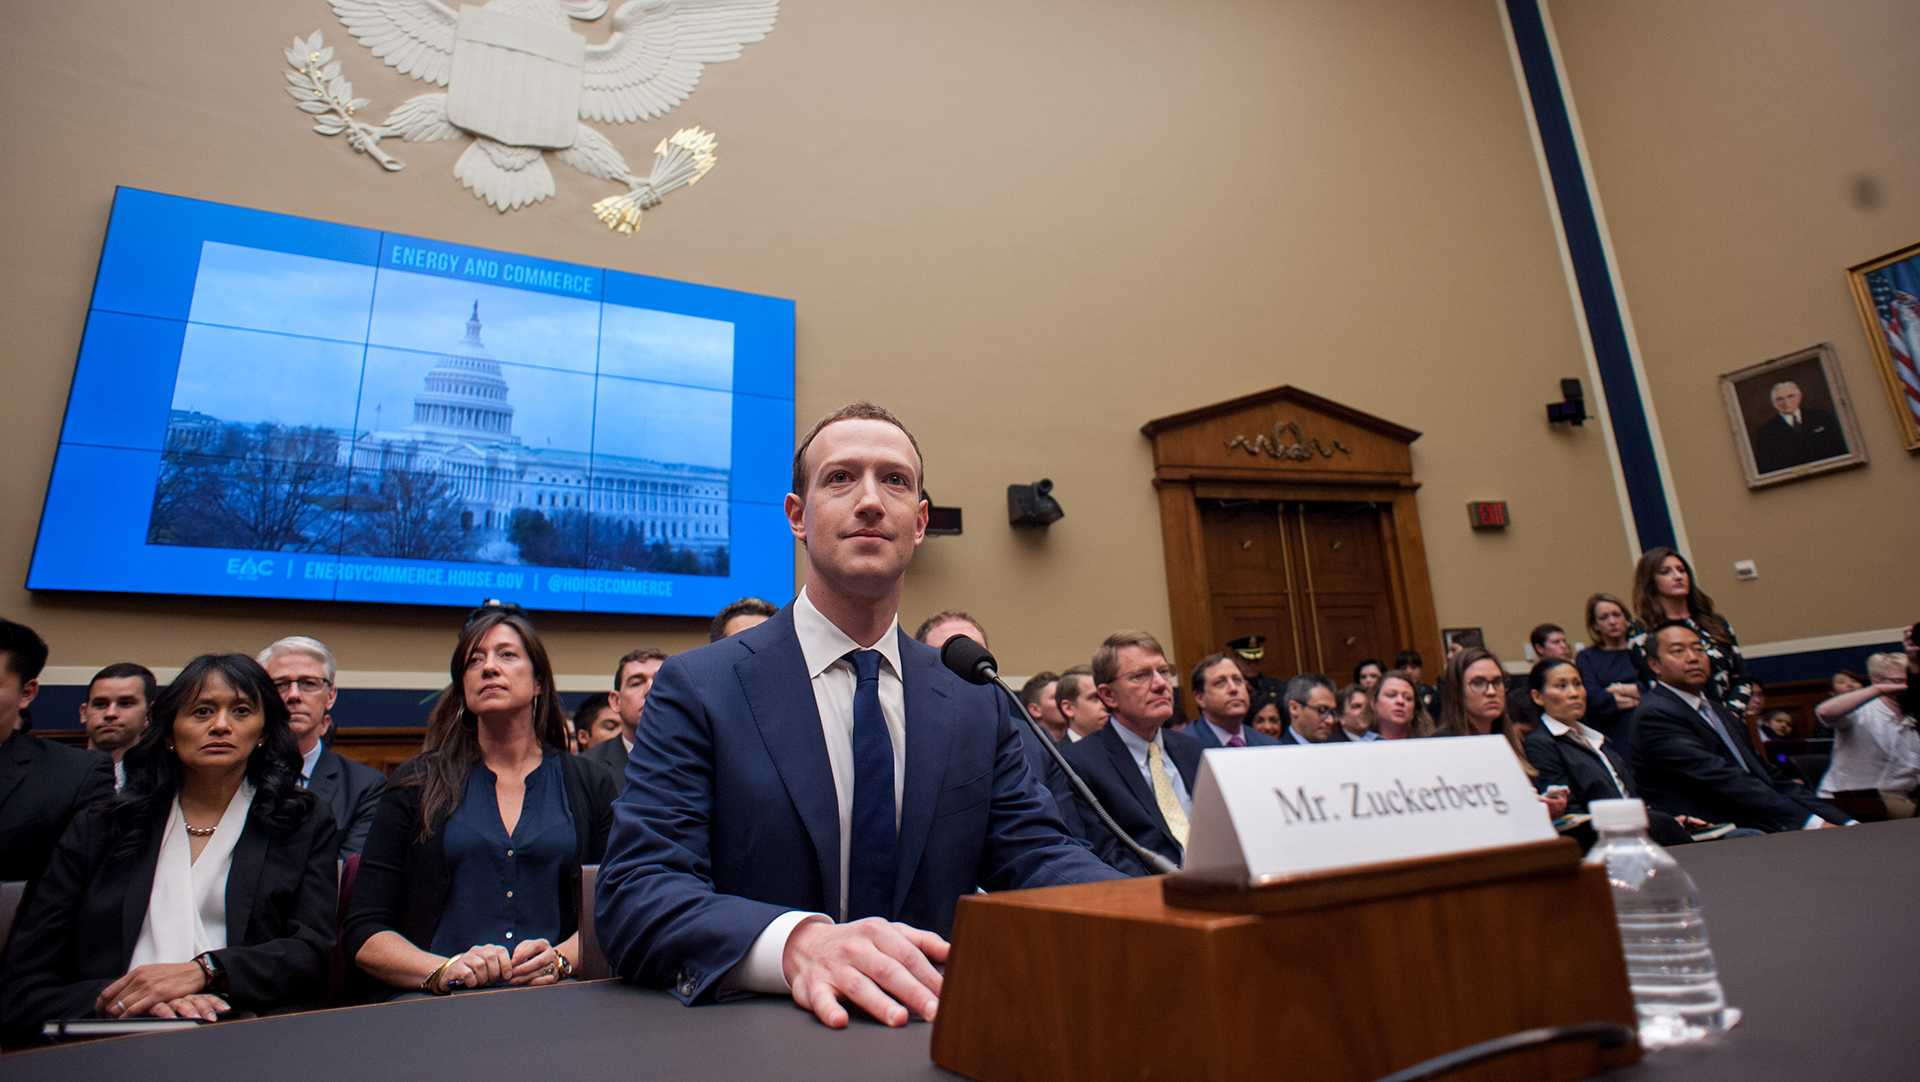 Facebook CEO Mark Zuckerberg appears before the House Energy and Commerce Committee in Washington, D.C., on April 11, 2018. (Erin Scott/Zuma Press/TNS)